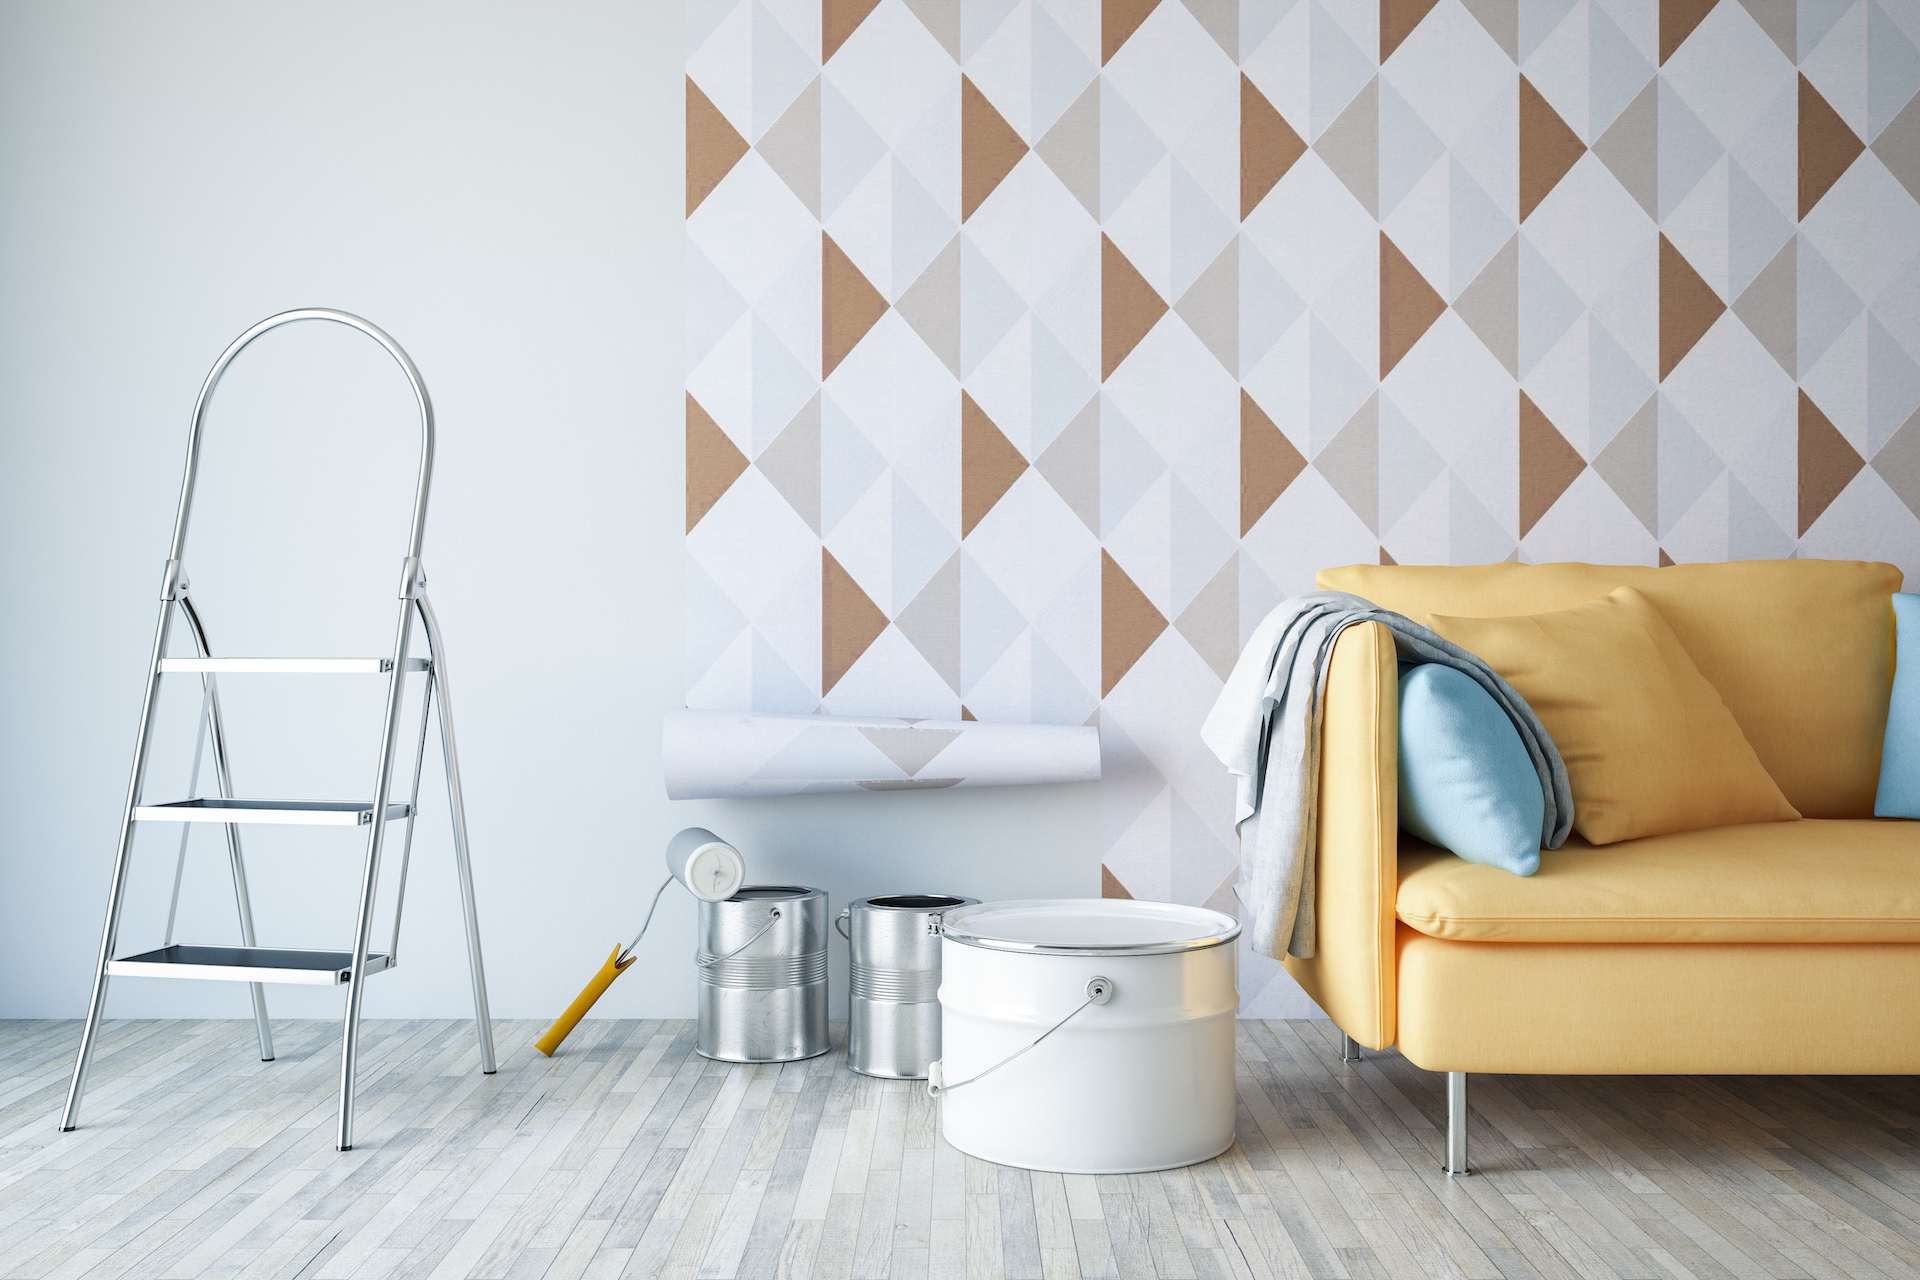 Can You Paint or Renovate a Rental Apartment?